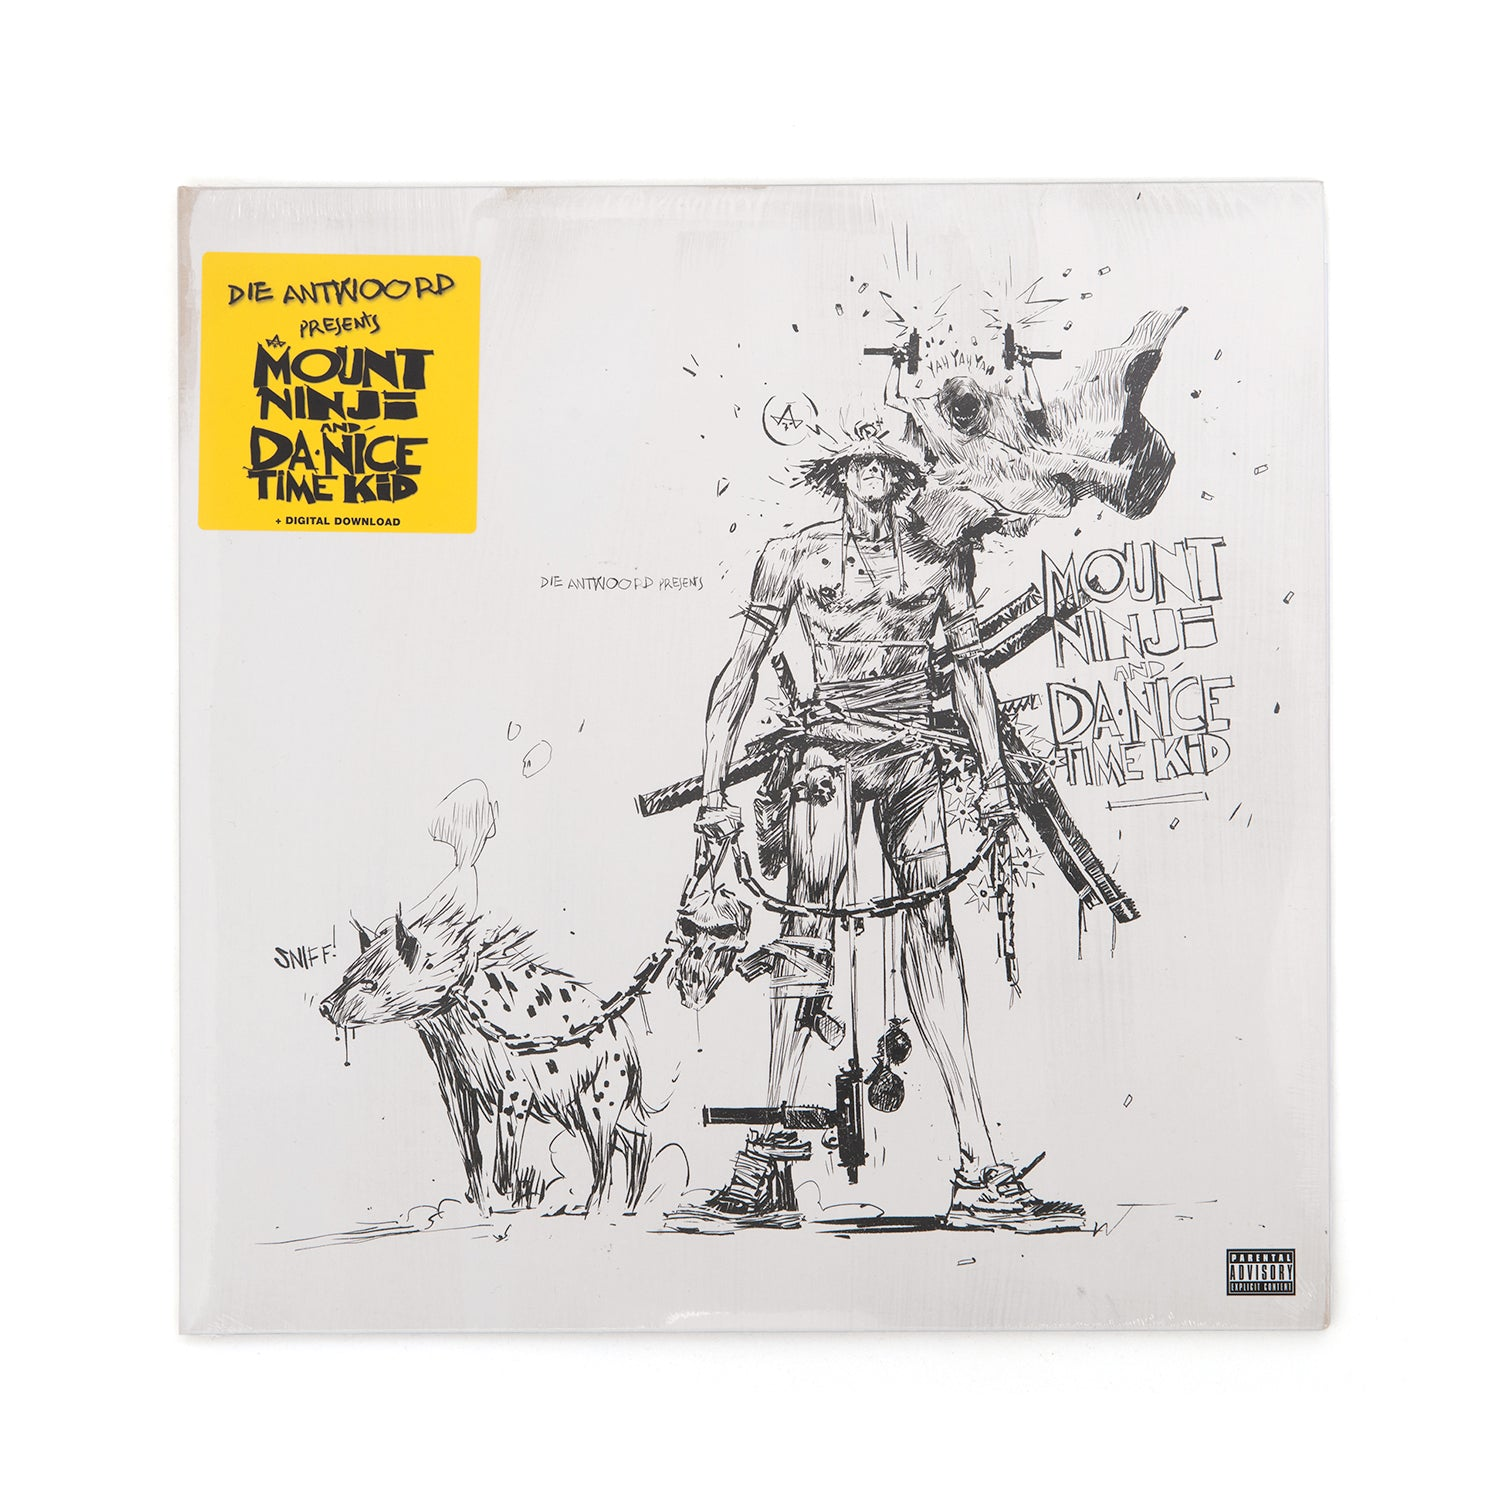 Die Antwoord - Mount Ninji And Da Nice Time Kid 2-LP